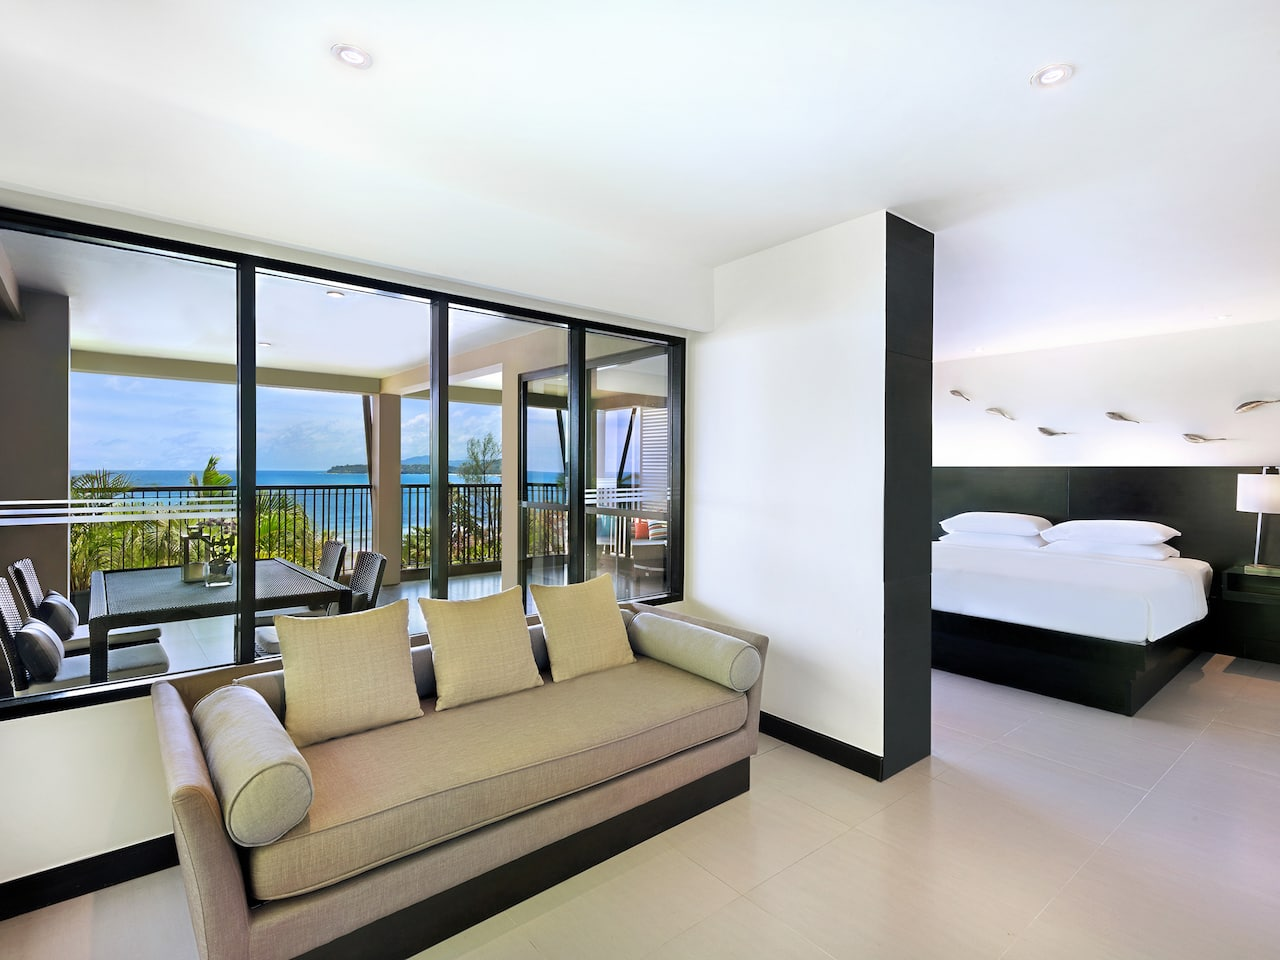 5-star Phuket Hotel in Kamala Beach 2 Bedroom Regency Suite